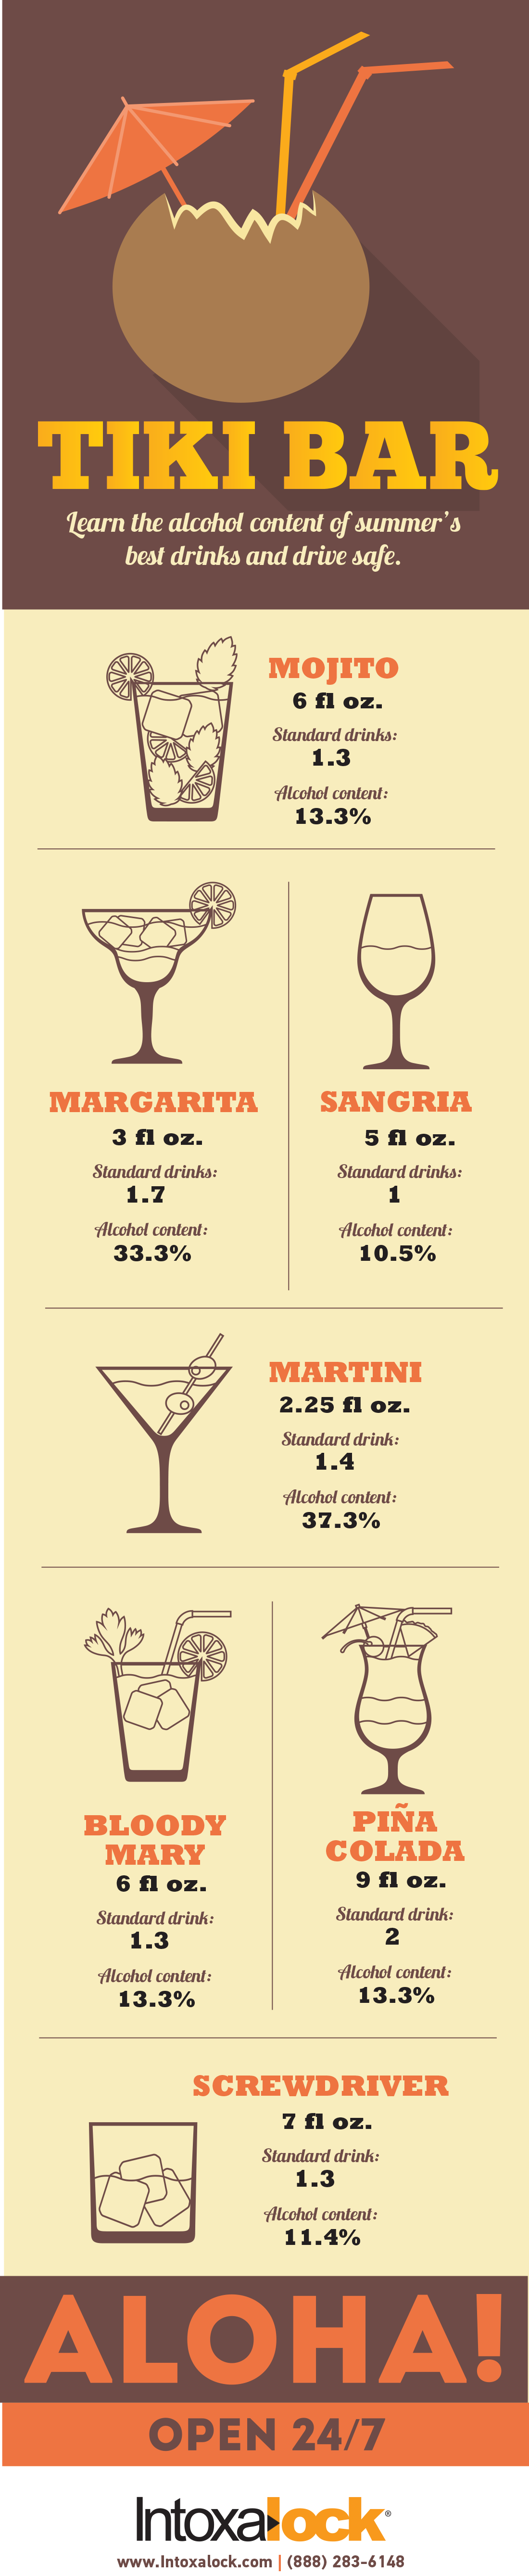 Amount of alcohol summer-time drinks contain infographic